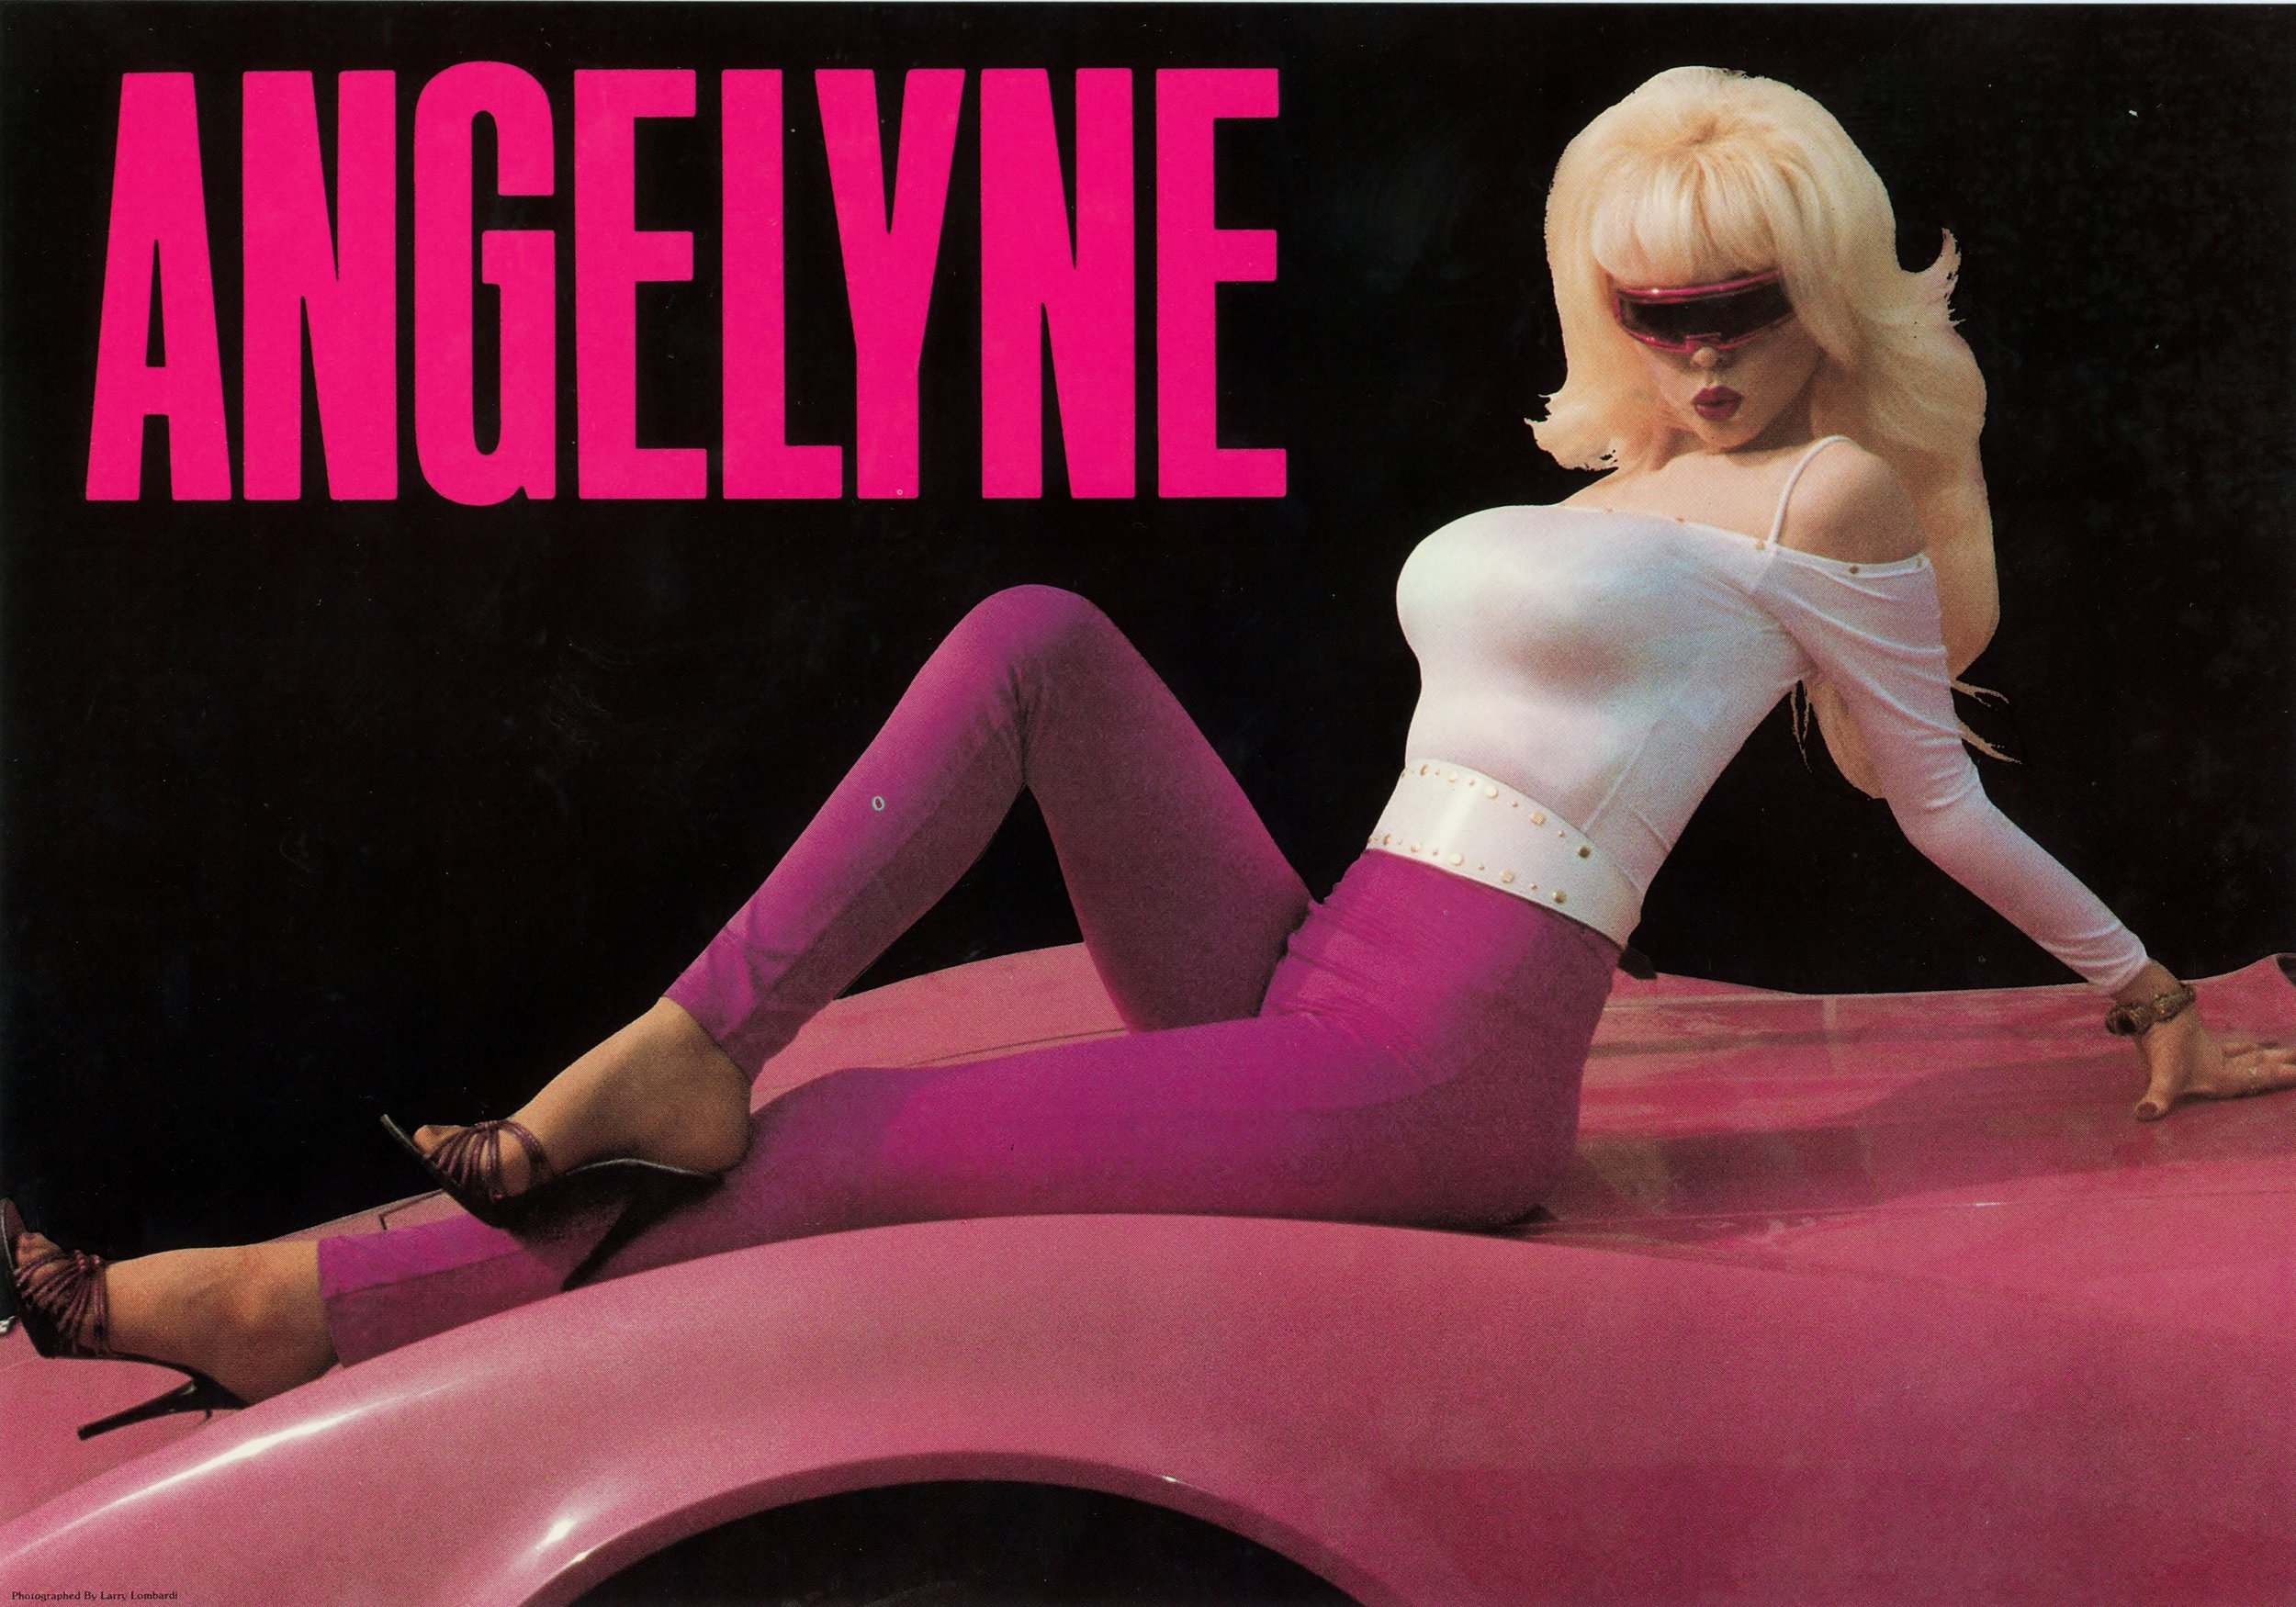 ANGELYNE-BILLBOARD.jpg